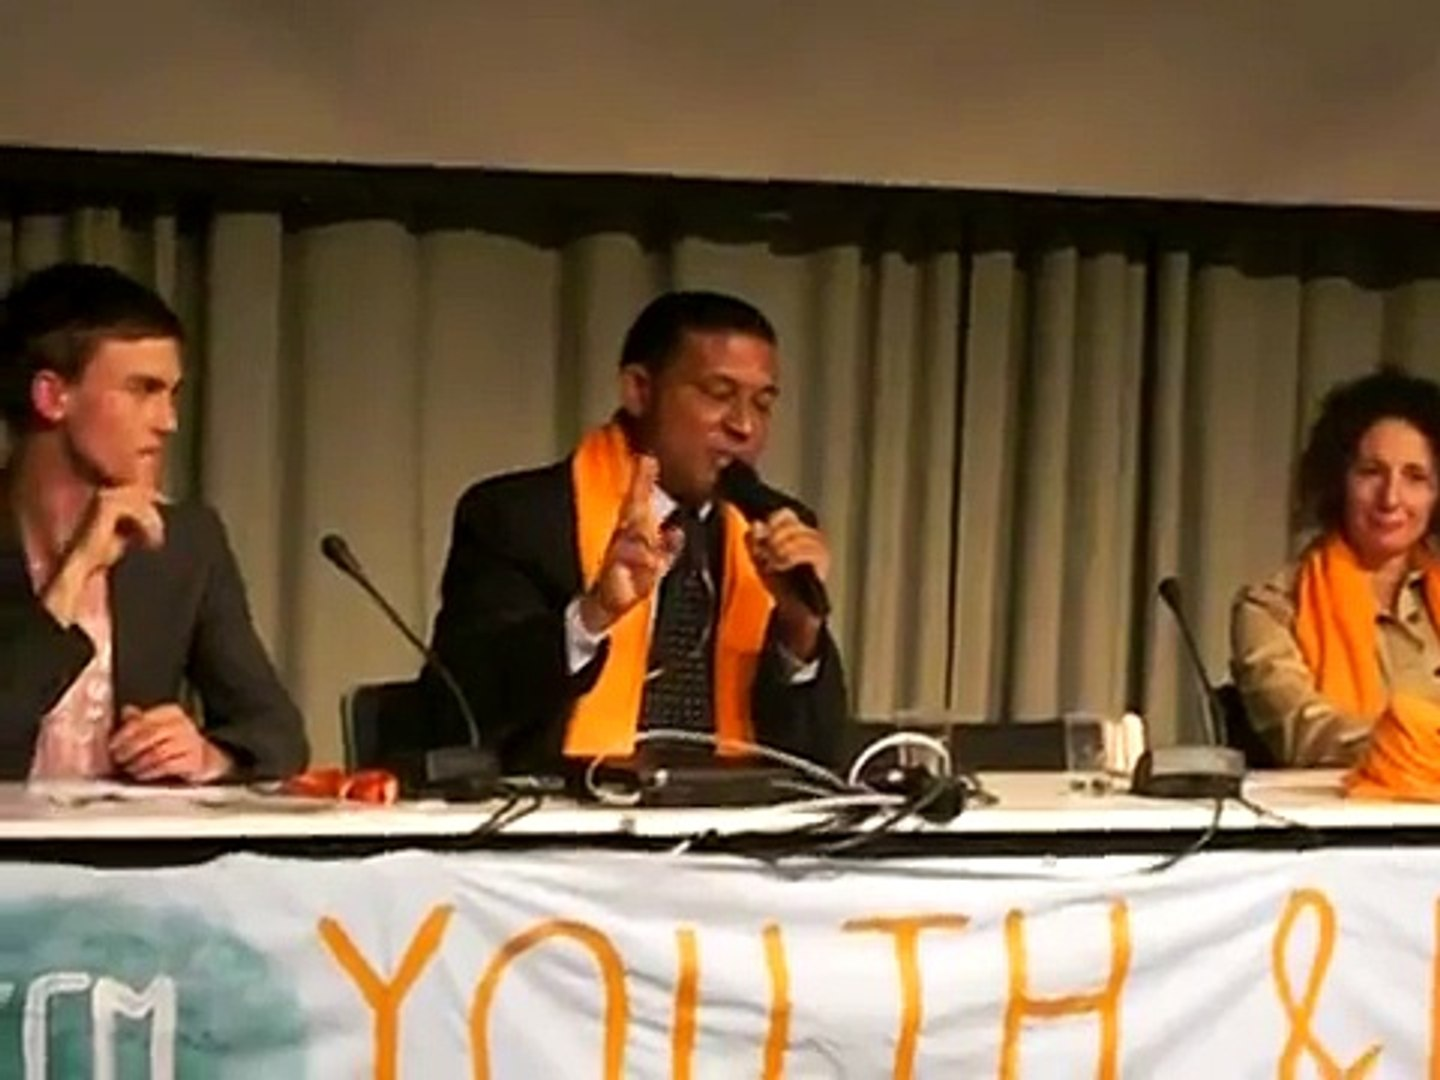 Minister from the Maldives' inspirational speech to youth at the UN Climate meeting